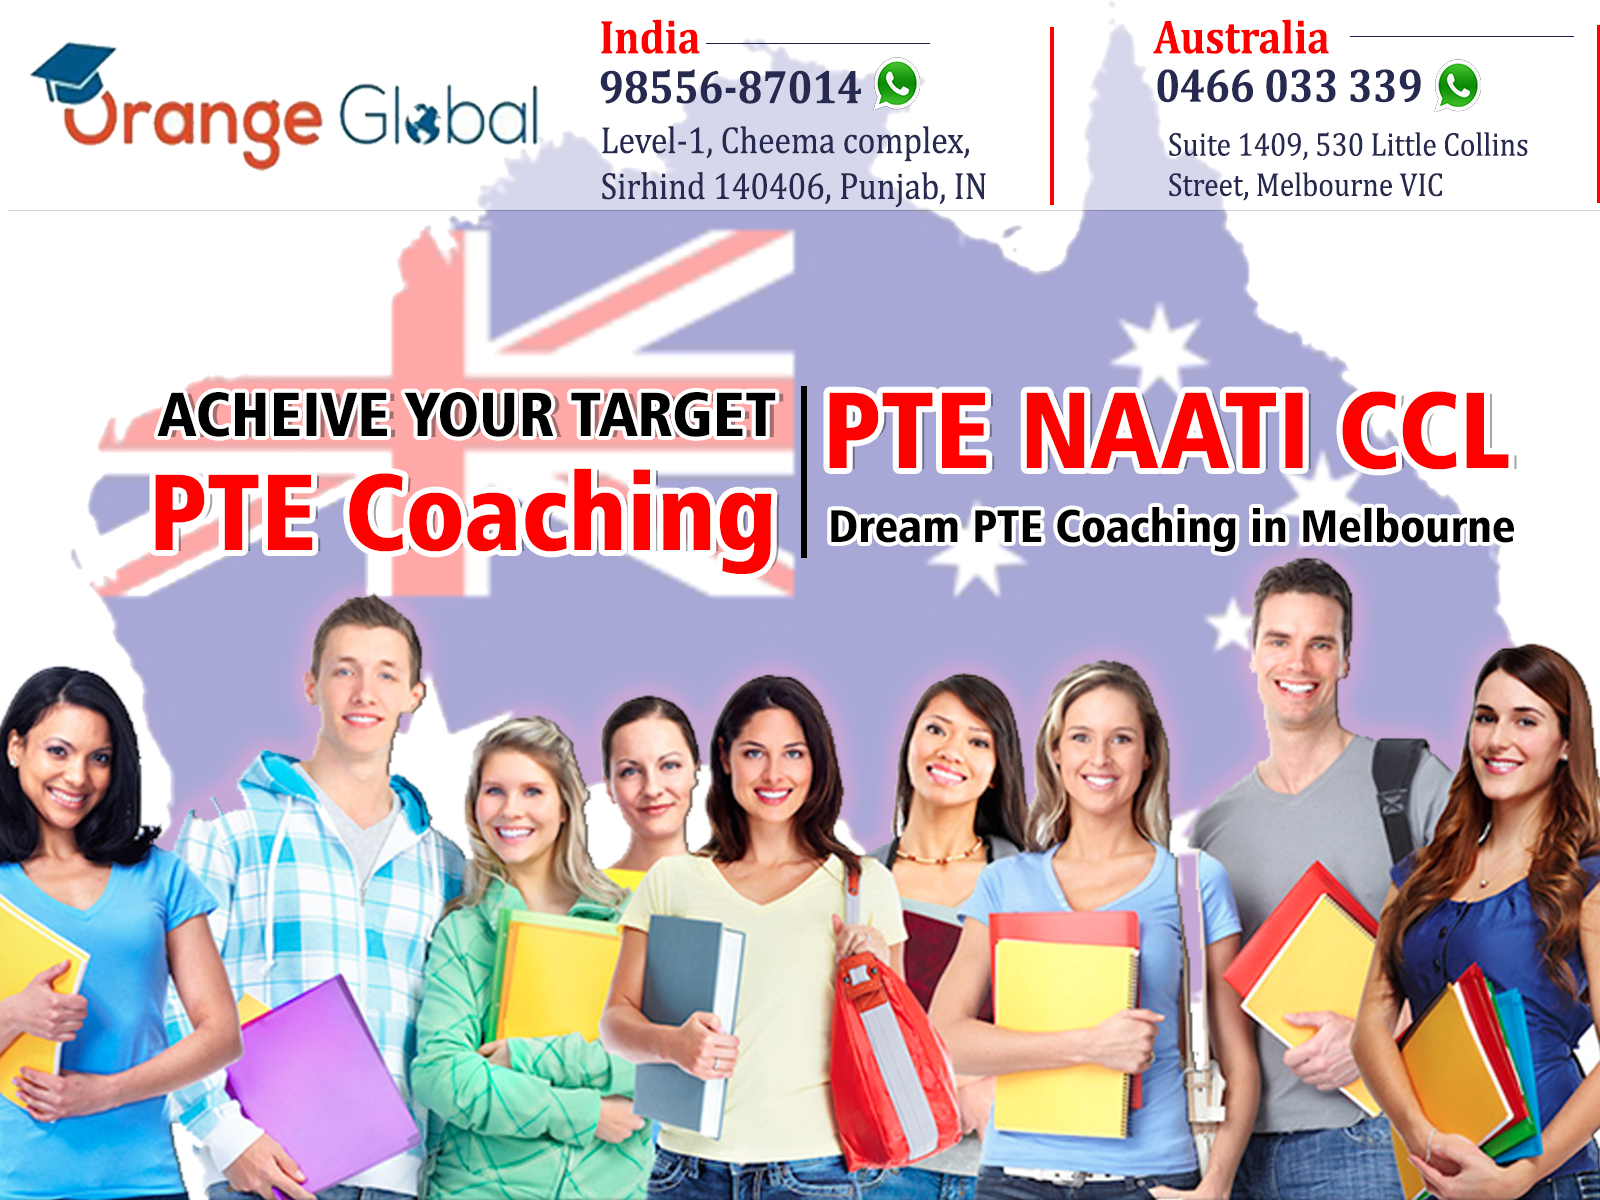 Dream PTE Coaching in Melbourne